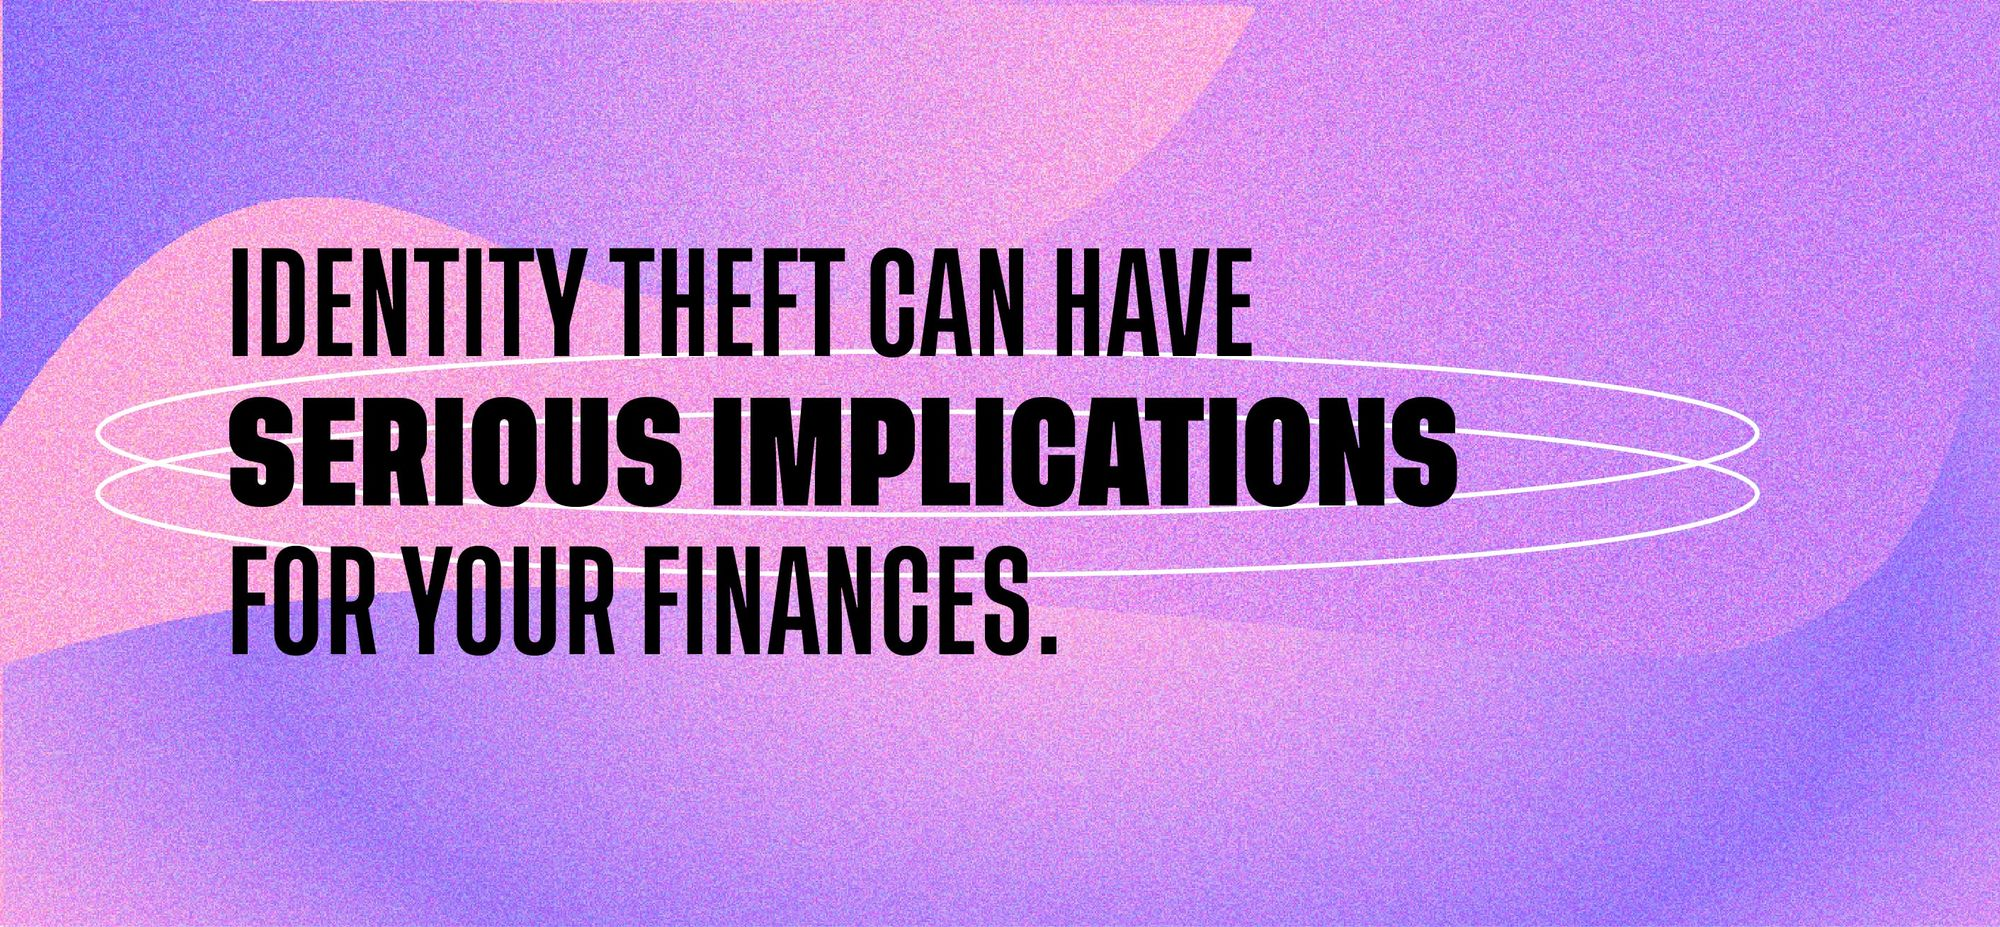 Identity theft can have serious implications for your finances.